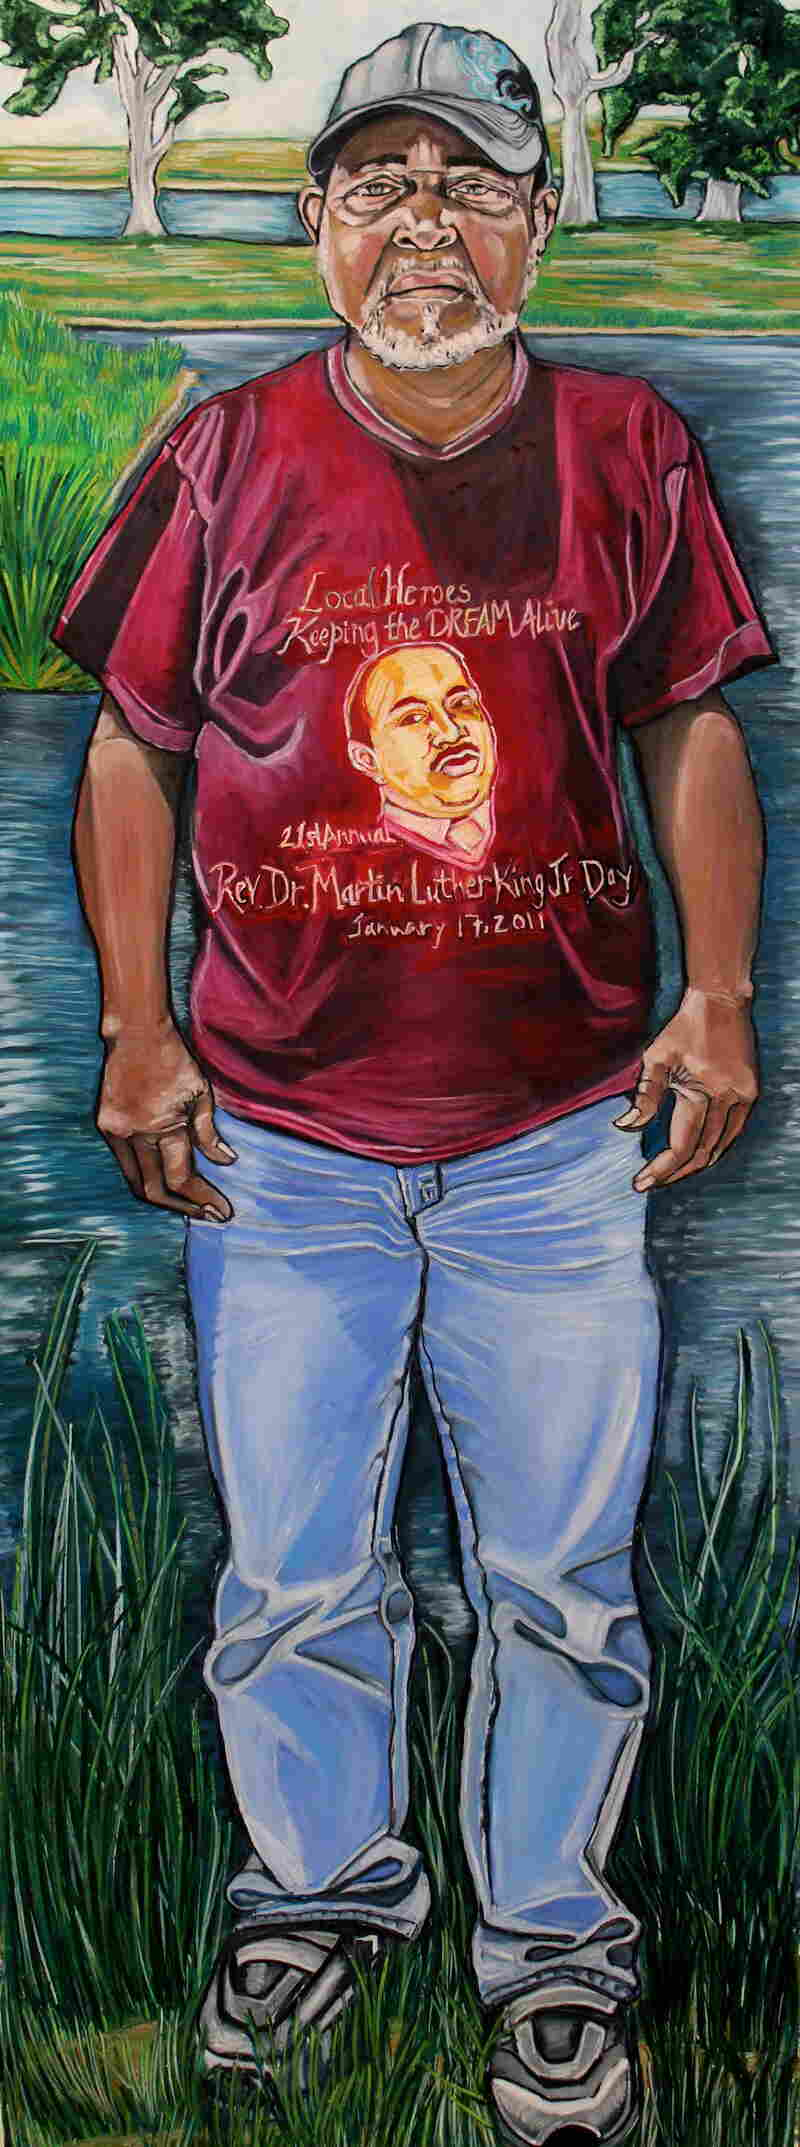 Gary Barthelmy, Oyster Fisherman is a portrait by Reeva Wortel, used in conjunction with the production of Spill, a play that runs through March 30 at the Swine Palace in Baton Rouge.